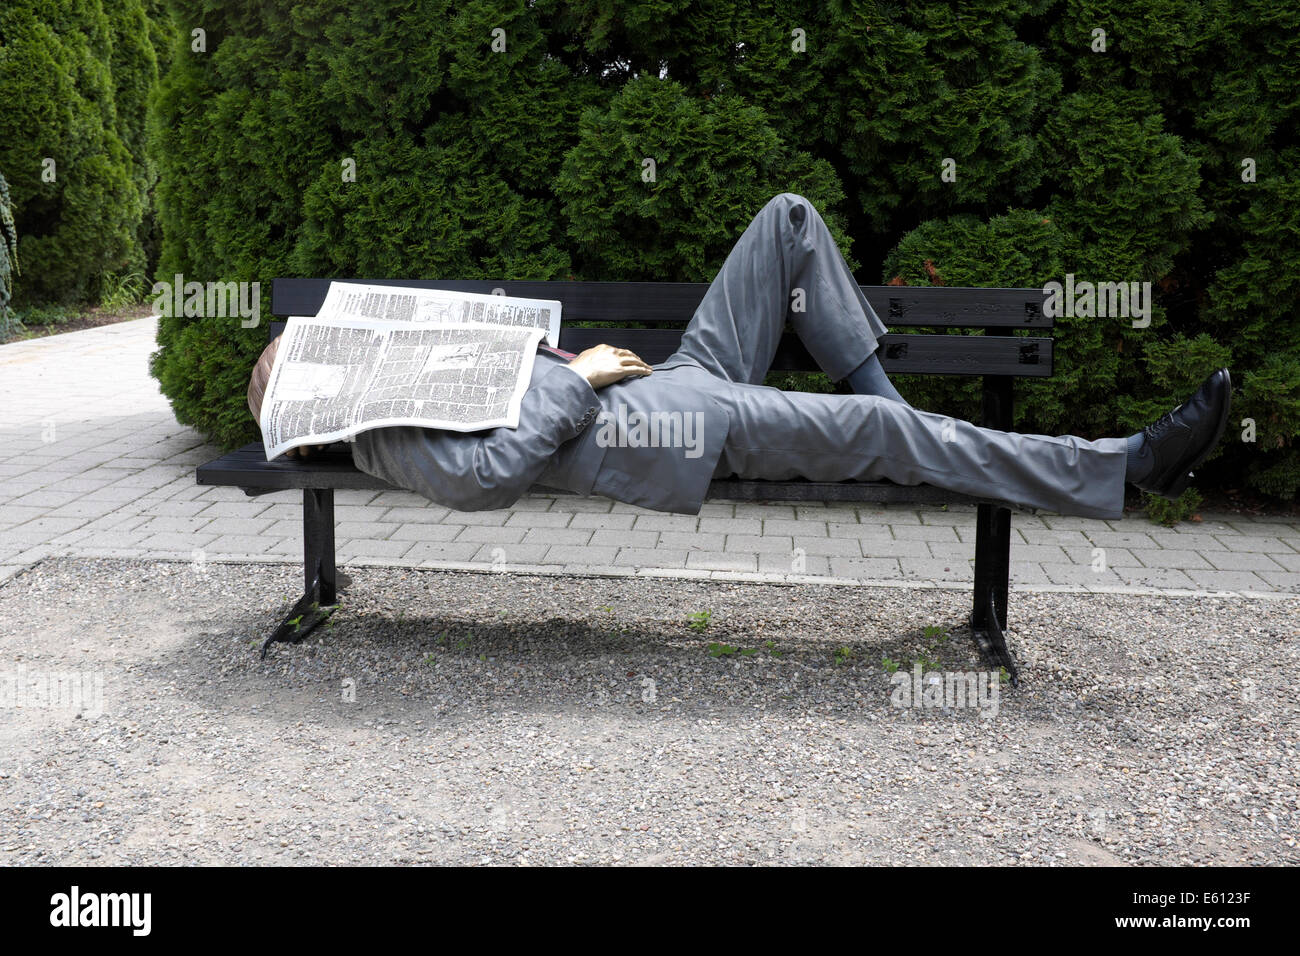 Between Appointments - Businessman sleeping under Newspaper - Sculpture by Seward Johnson - NJ Grounds for Sculpture - Stock Image